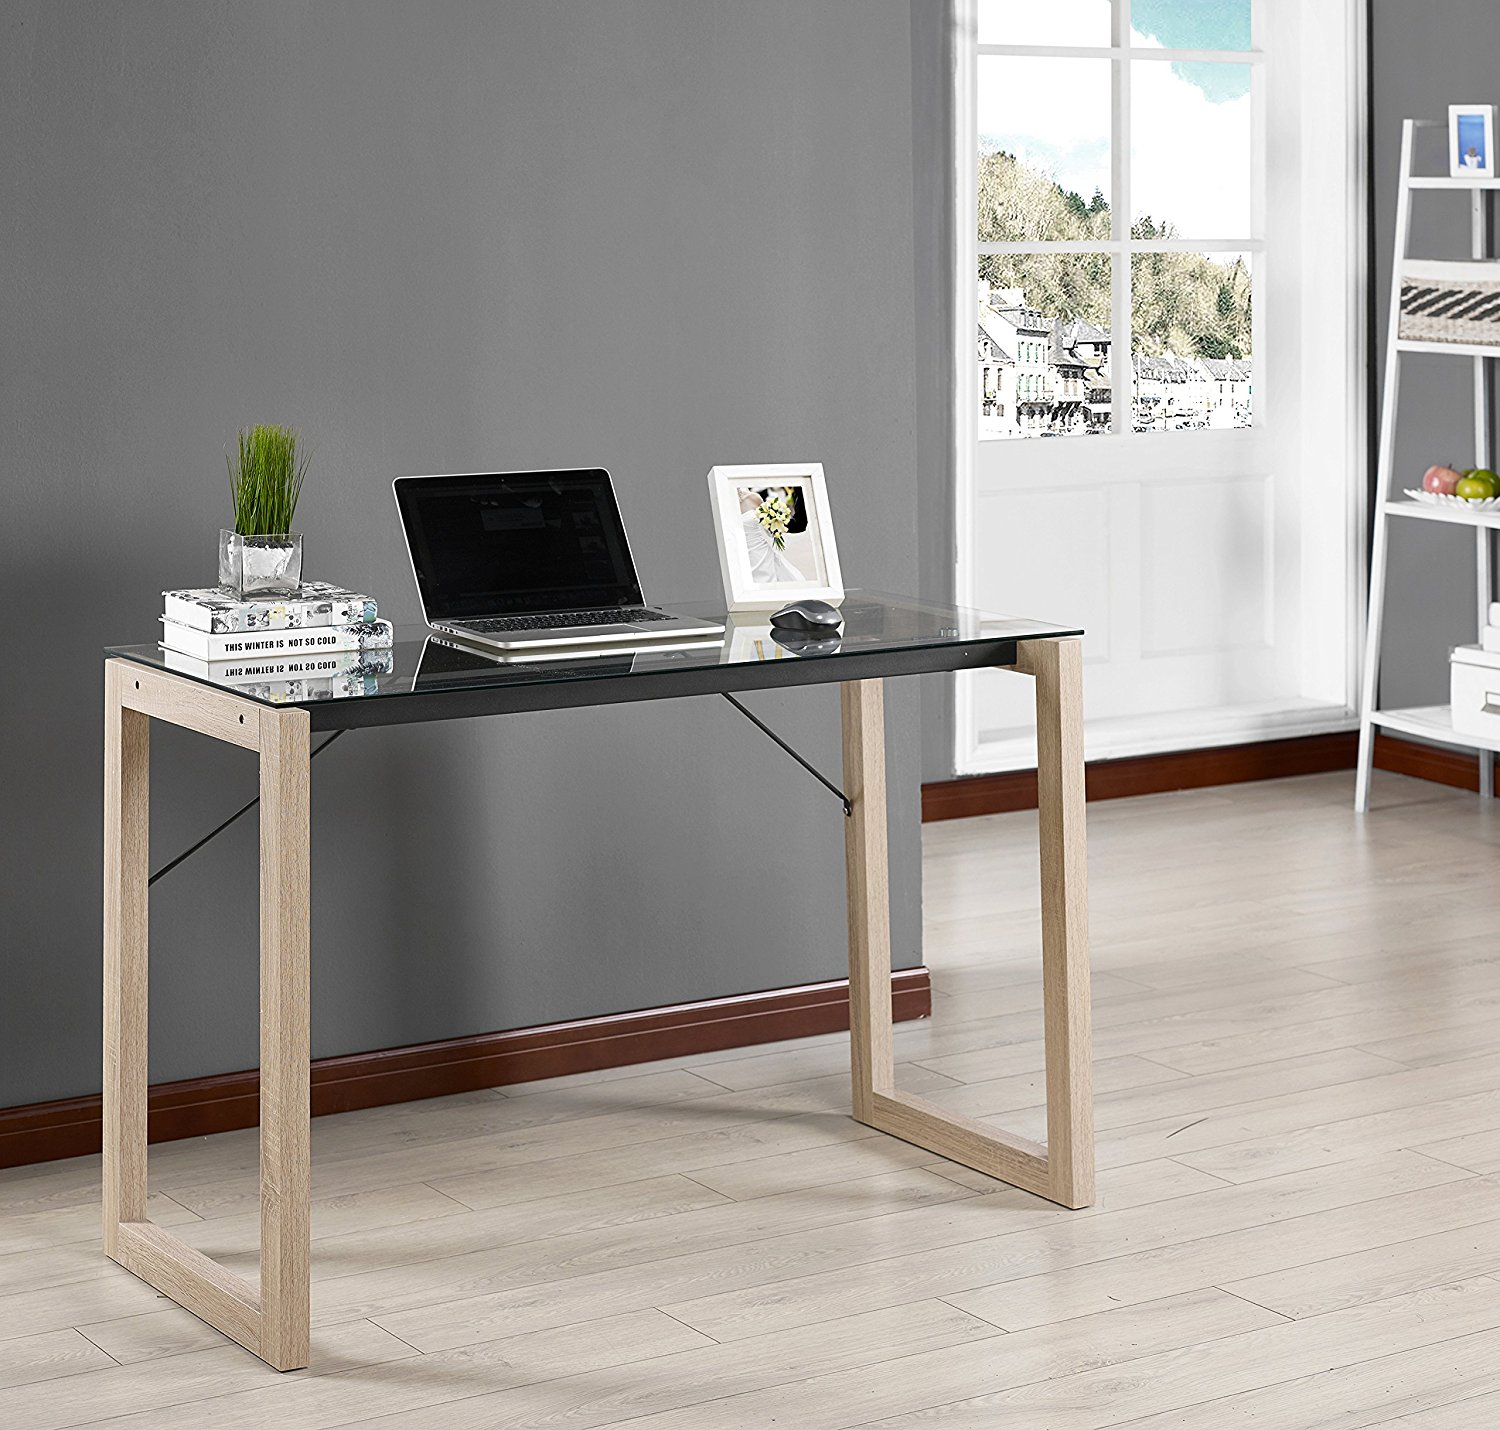 b02be337d99 Get Quotations · Kings Brand Black Tempered Glass   Natural Wood Home  Office Computer Desk